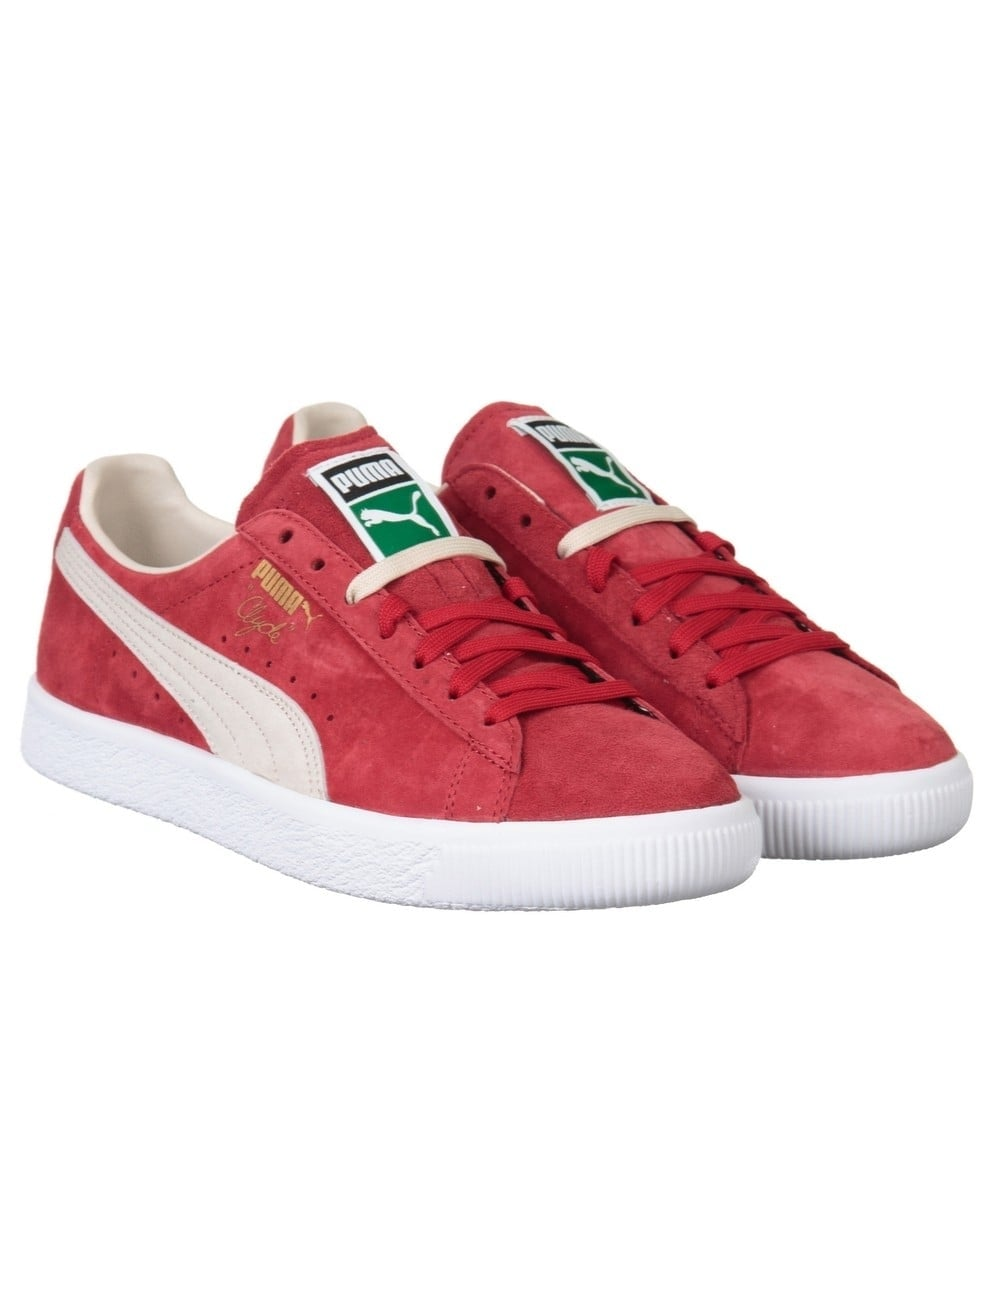 online retailer 7b9bc 8c3dc Clyde OG Shoes - Red/White (Flag Pack)